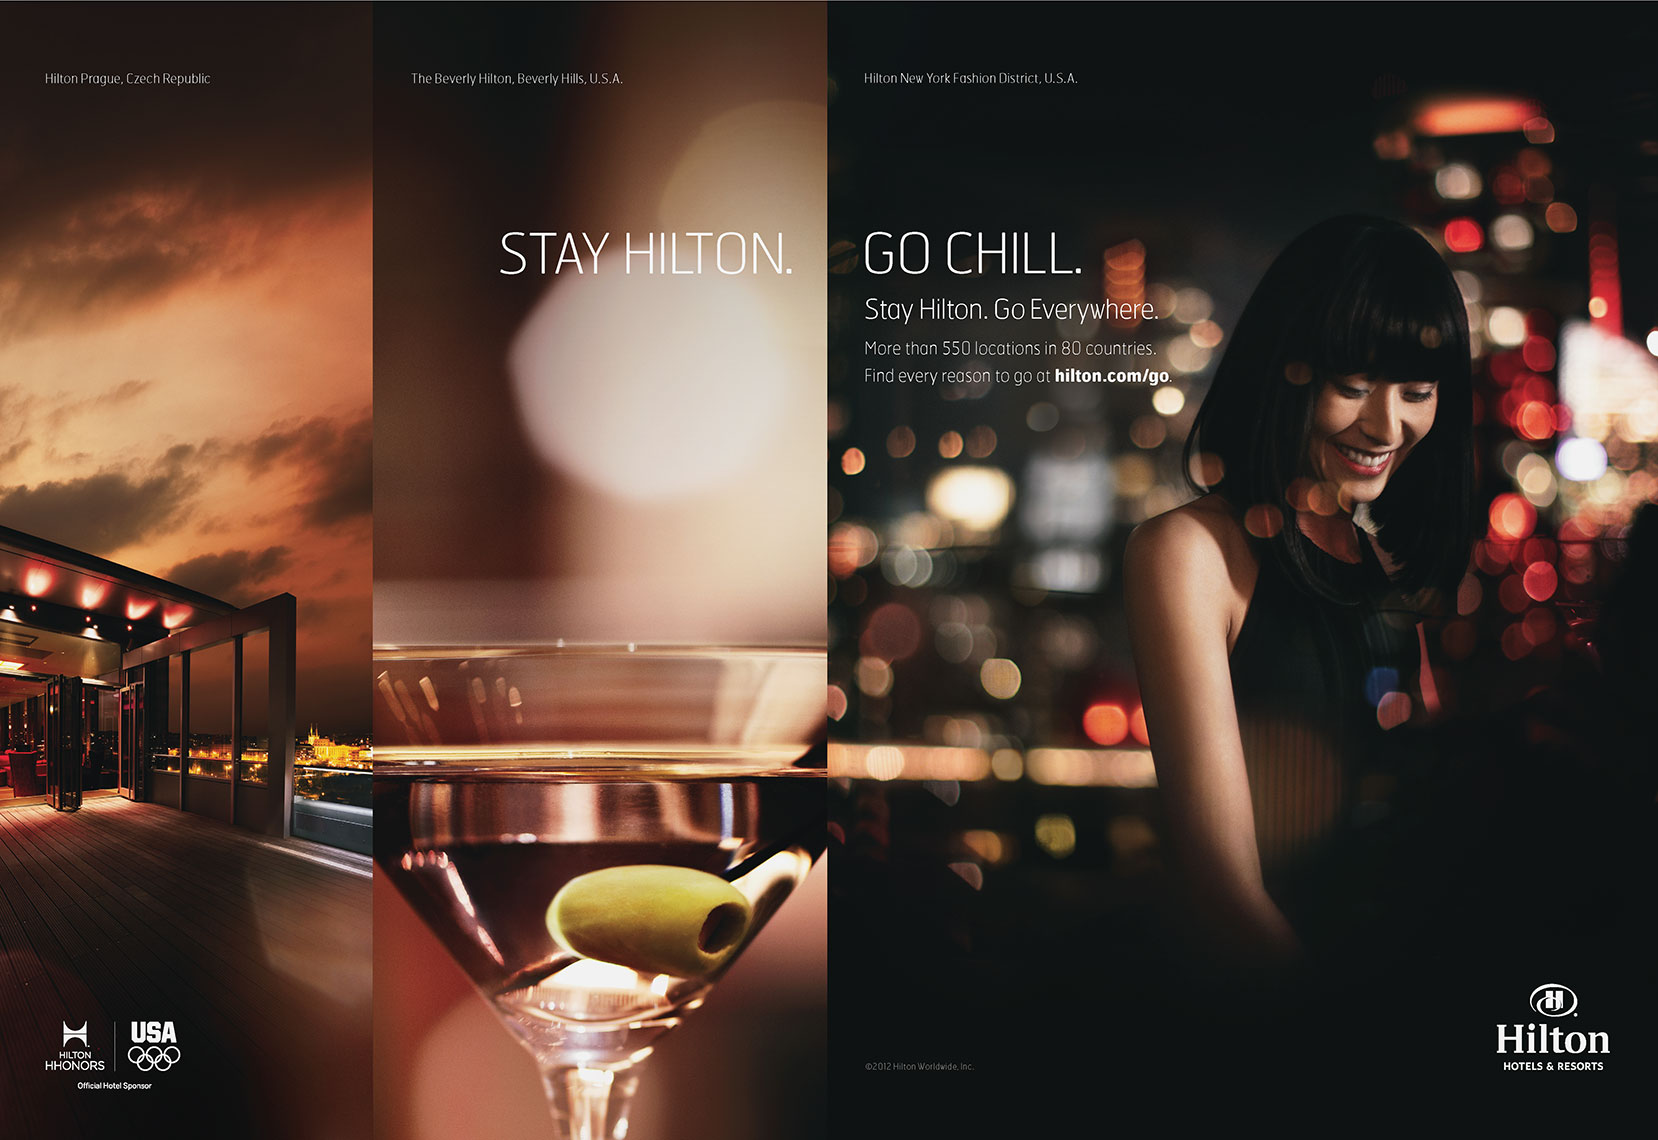 HILTON_ChillPrintSpread_WEBSITE